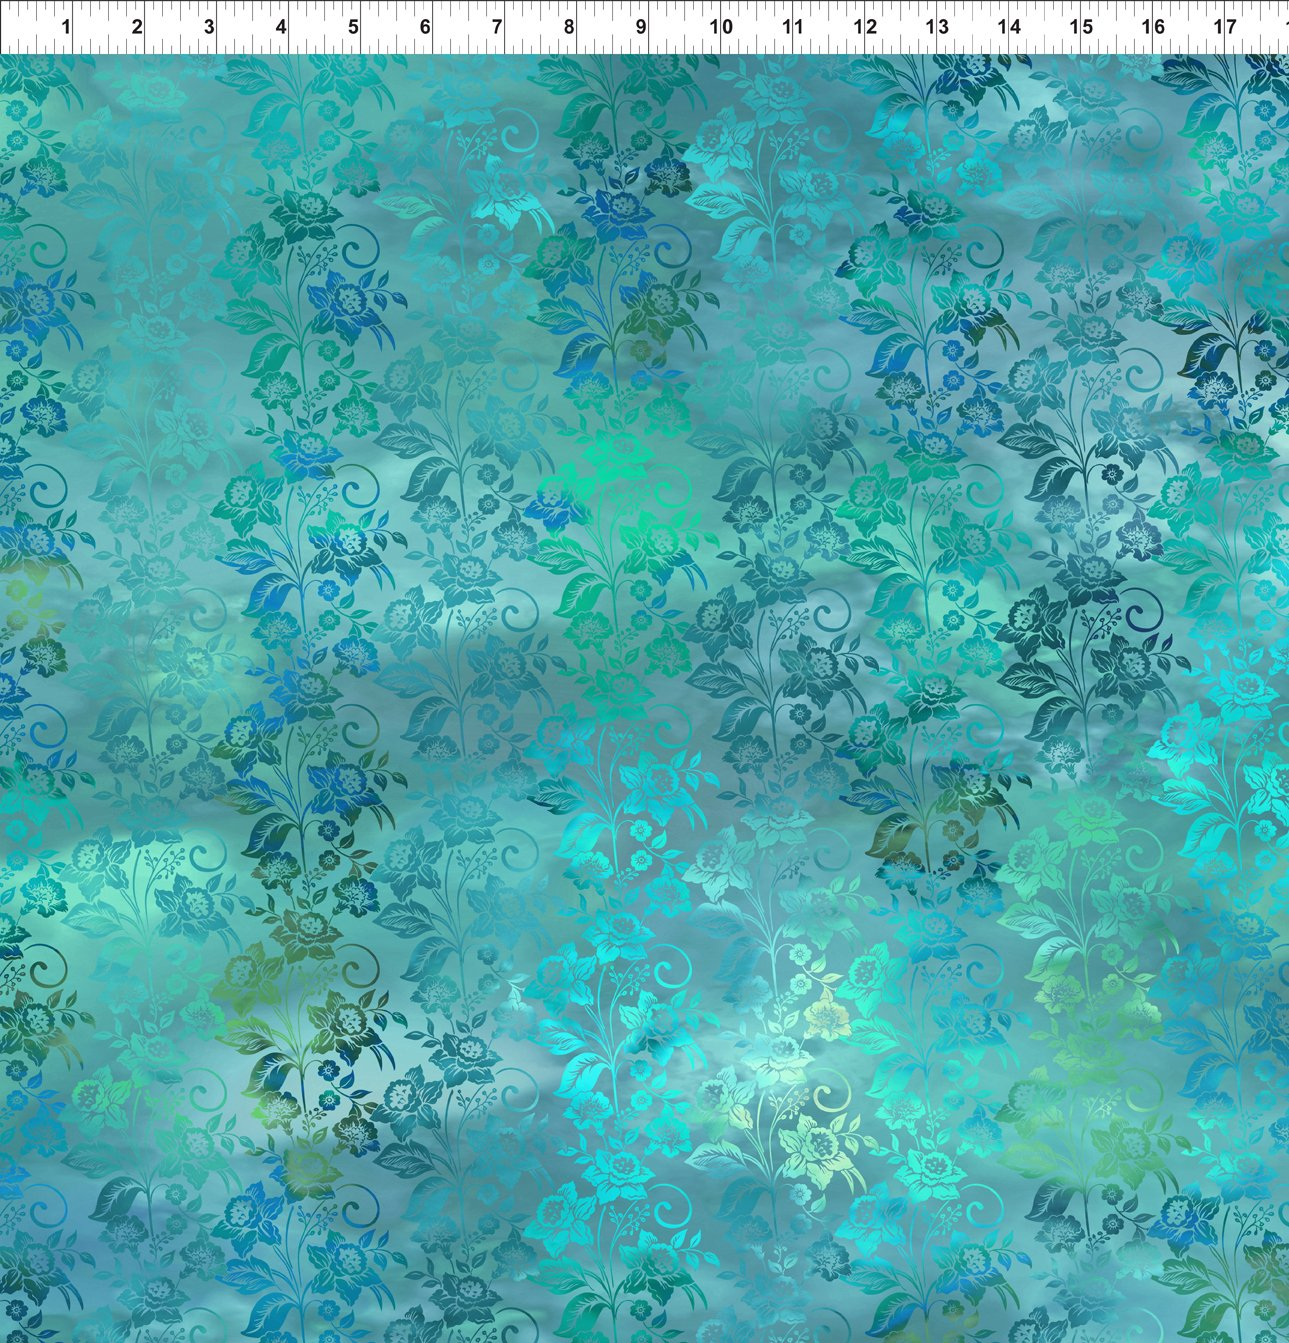 In The Beginning - Diaphanous-Enchanted Vine/Teal Mist - 5ENC3